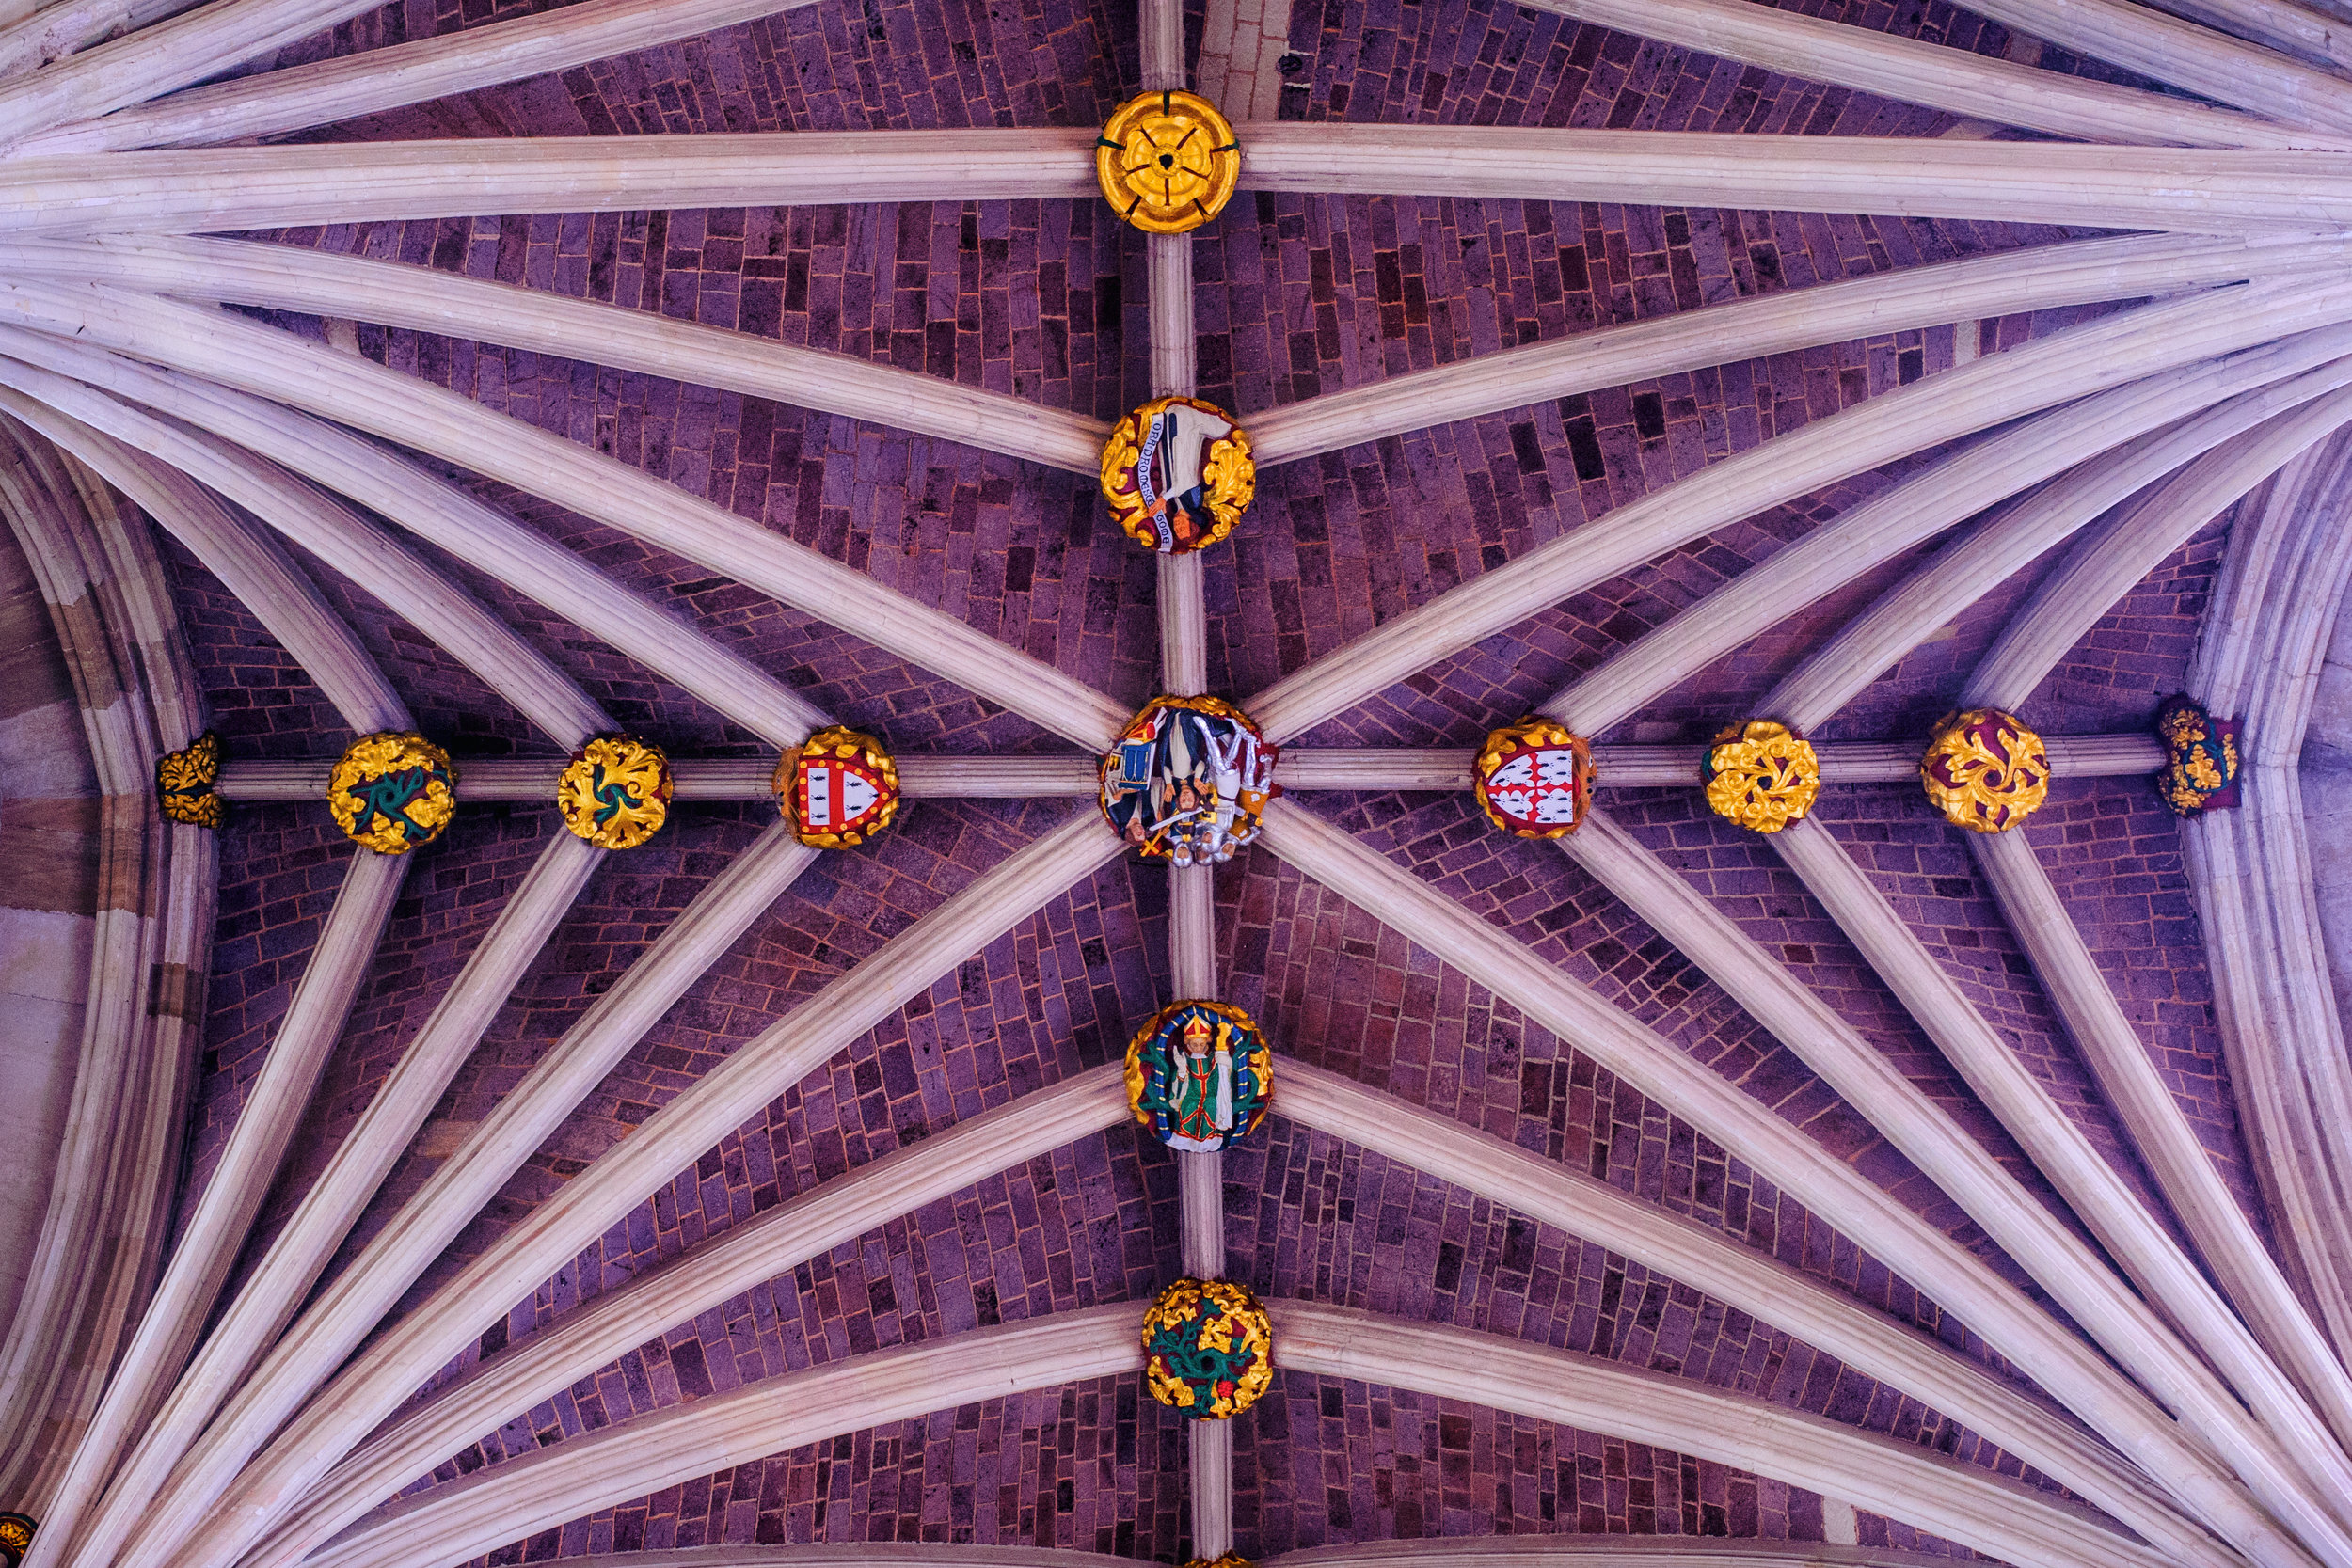 Don't forget to look up! Just a small part of the amazing ceiling of Exeter Cathedral